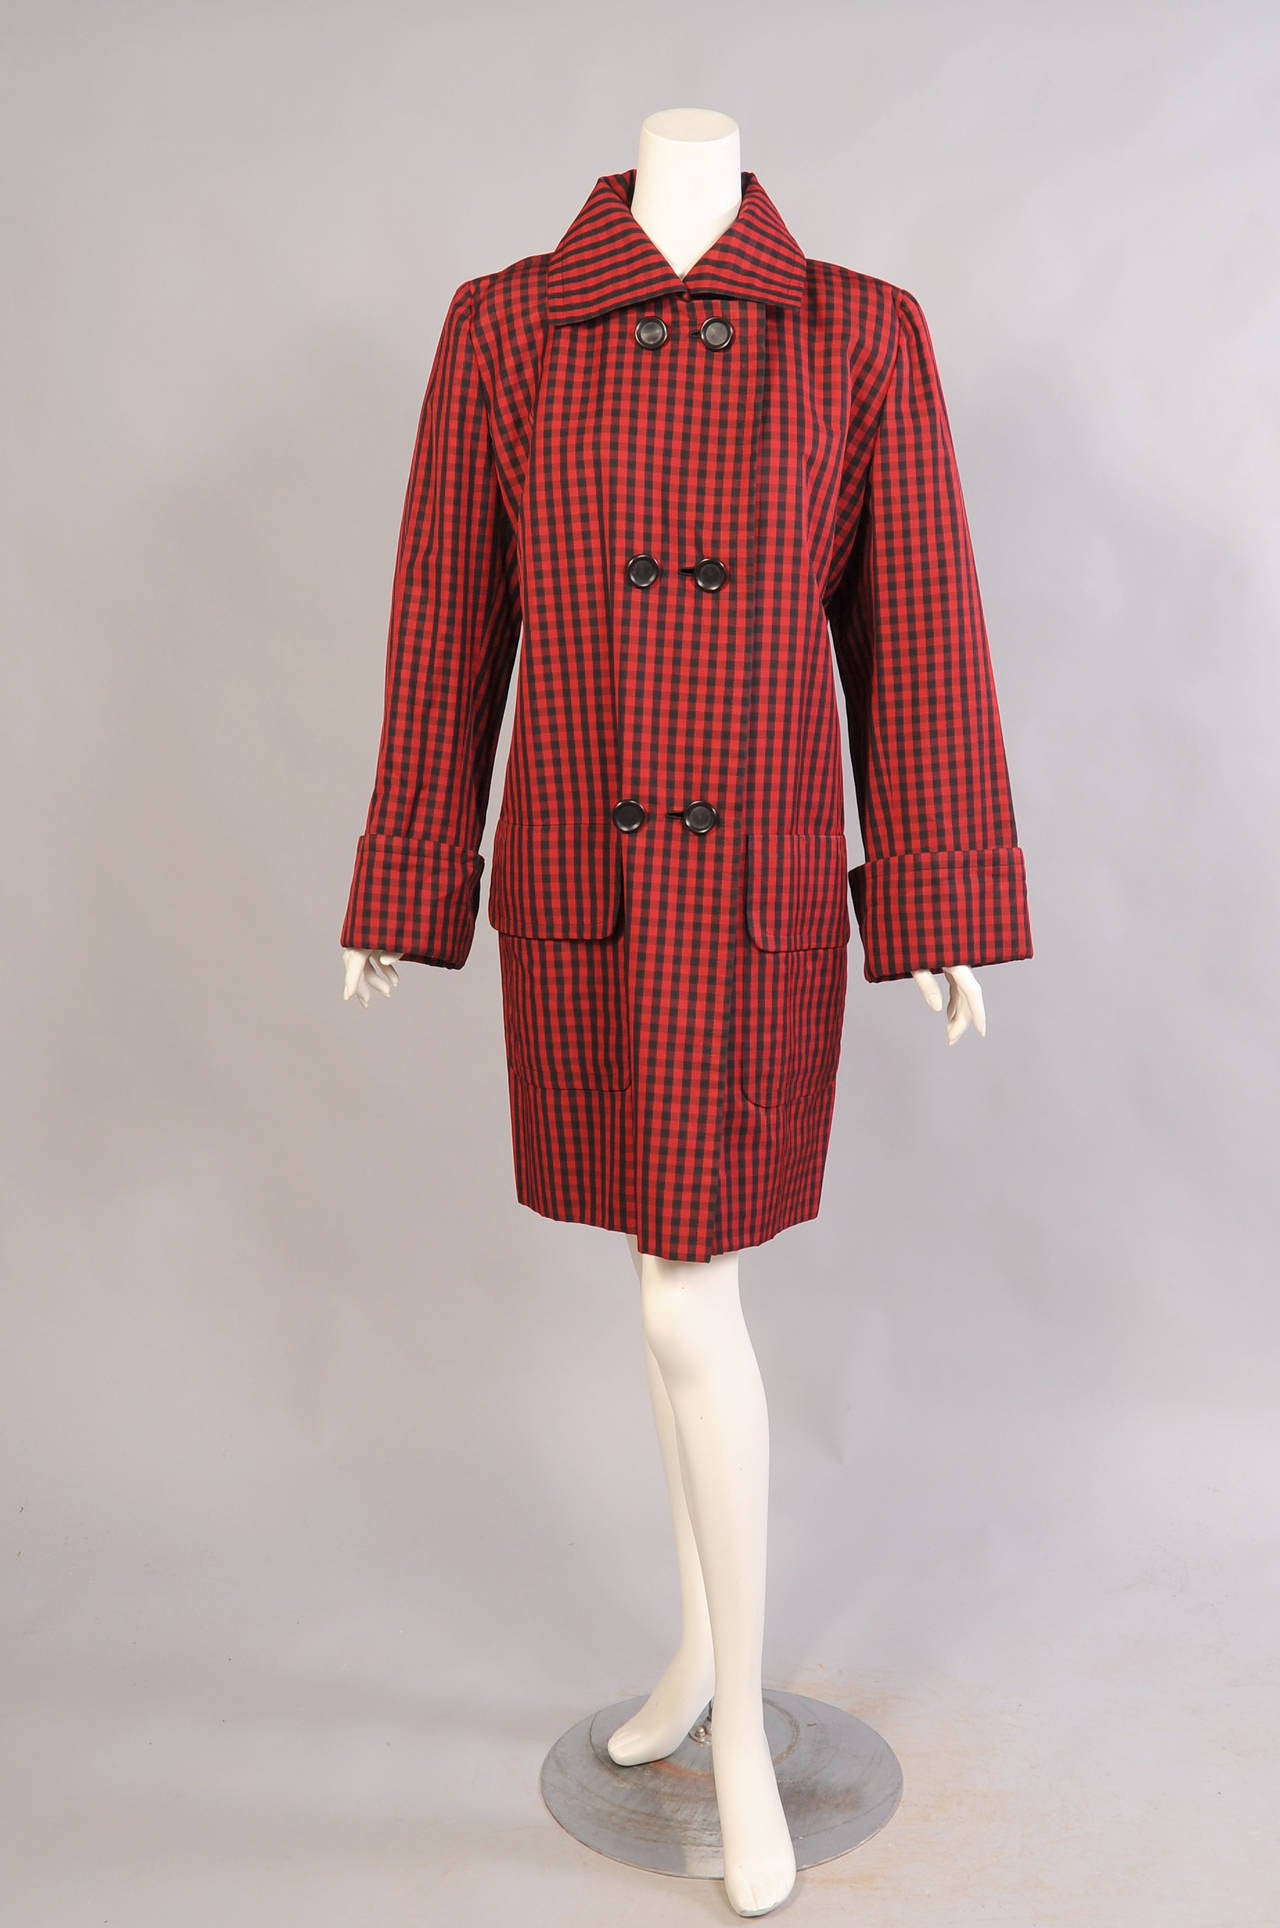 This generously cut red and black checked coat has six large black buttons, two large patch pockets and deep cuffs. The back of the coat has a deep yoke. It is fully lined in black silk and bears the numbered Givenchy Haute Couture label. It is in